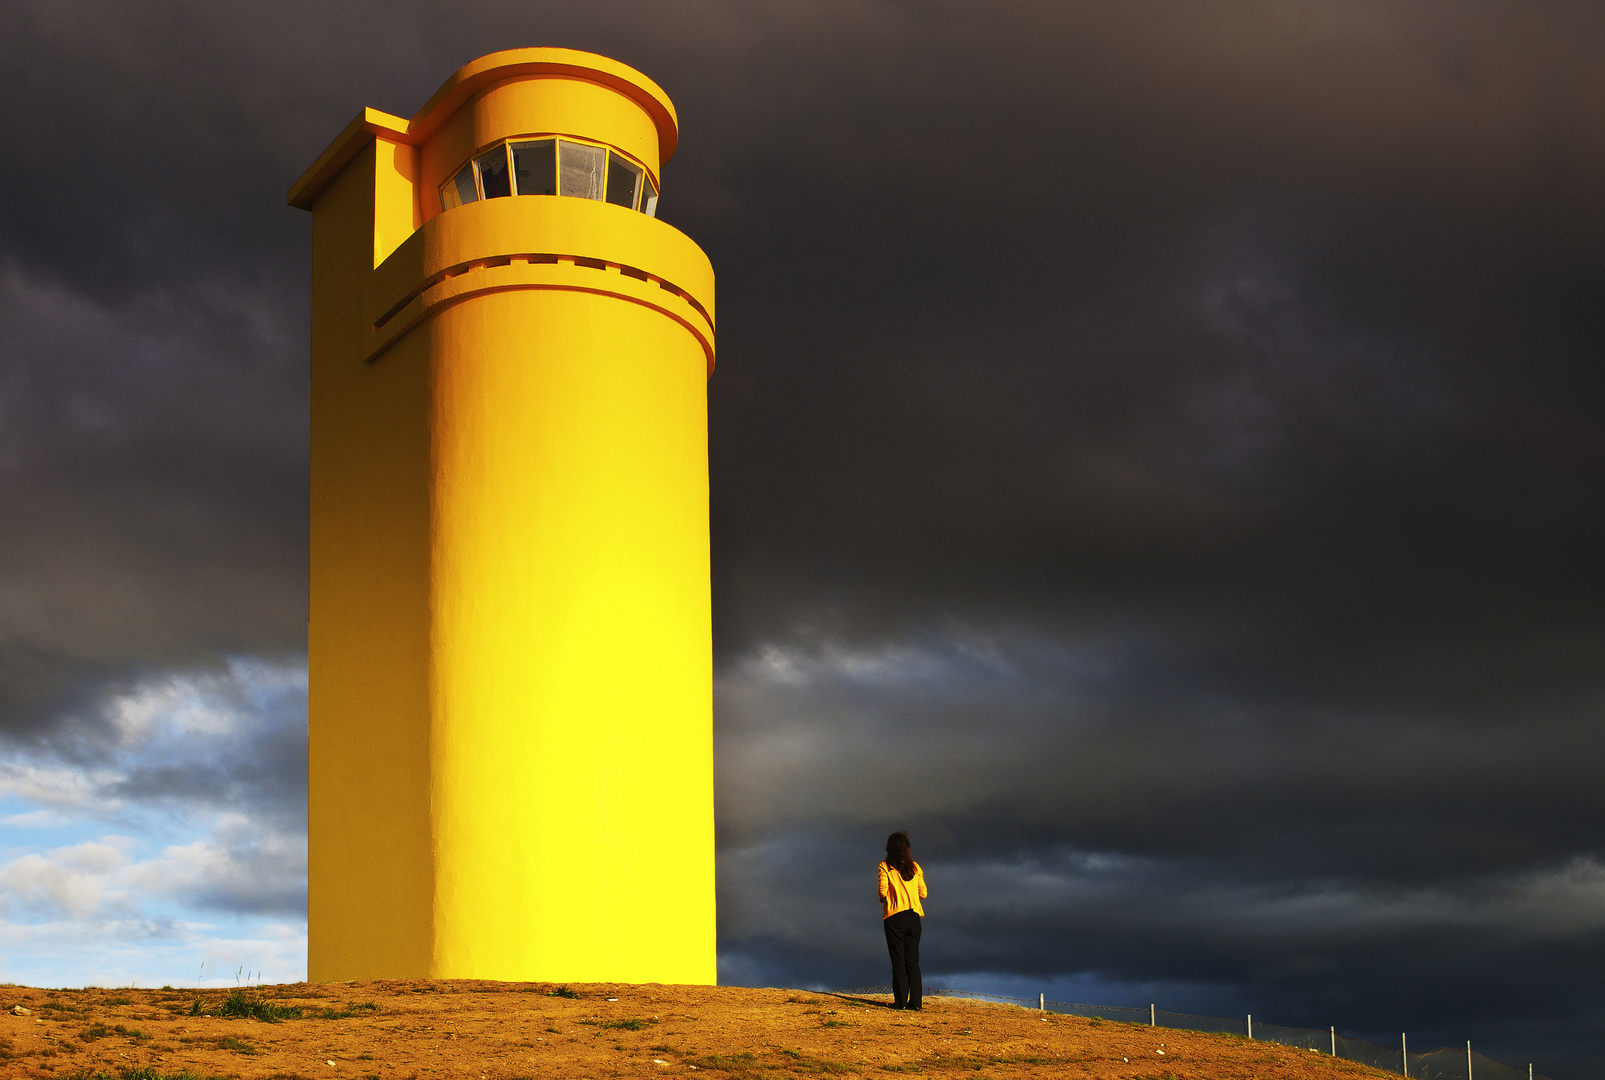 The yellow lighthouse and the tourist